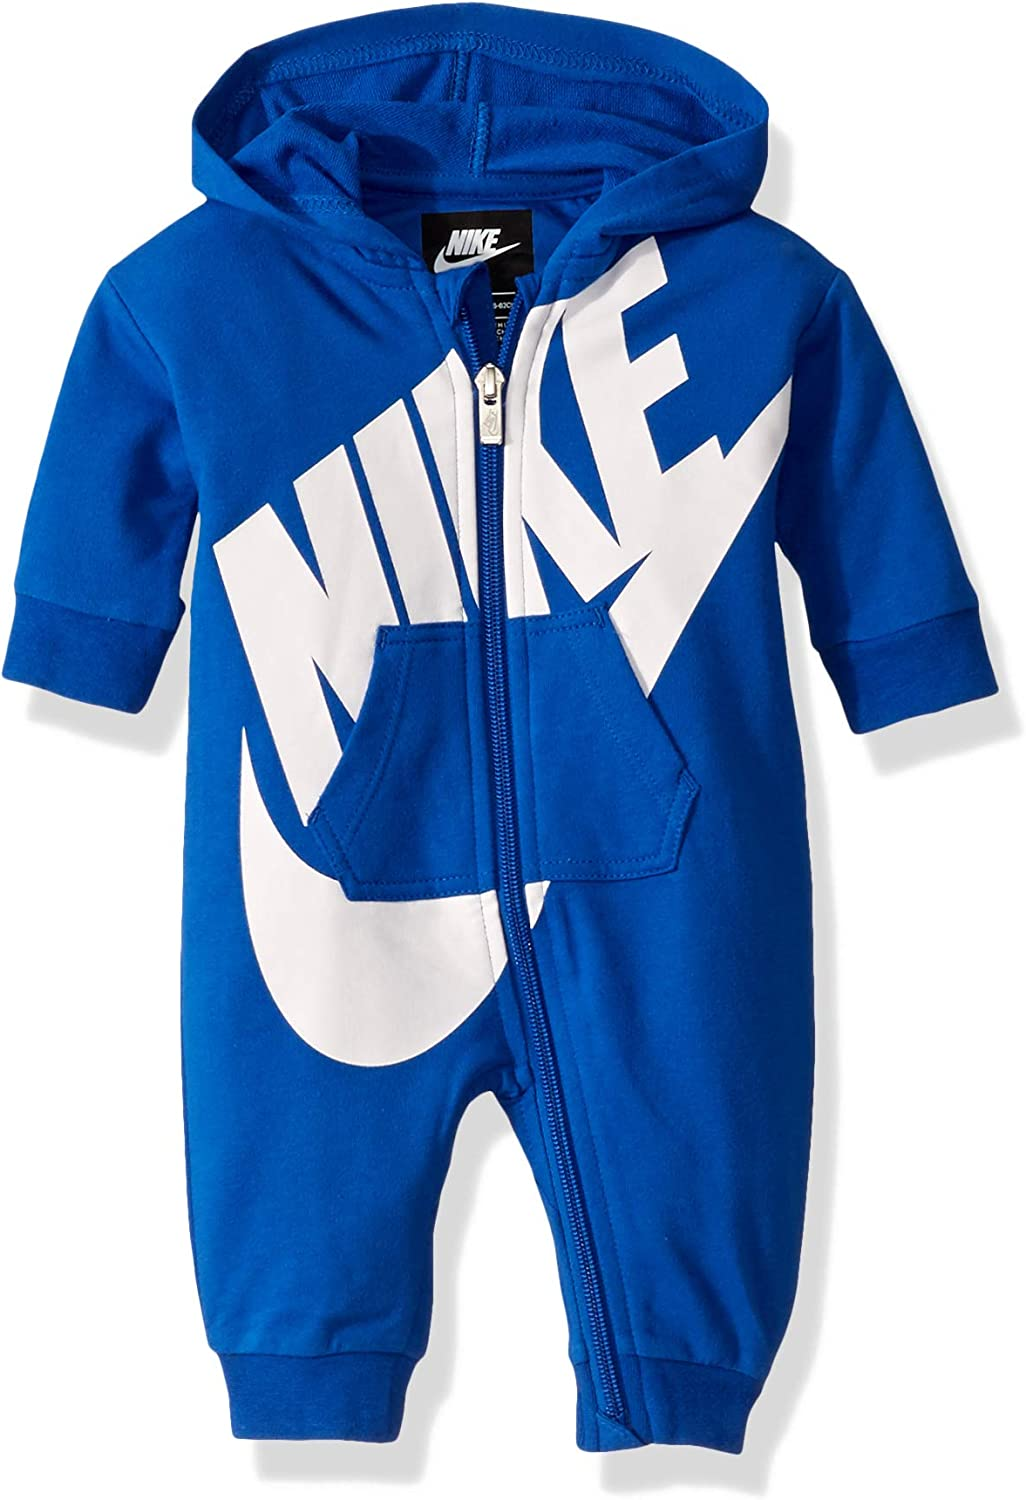 Nike Baby Boys' Hooded Coverall